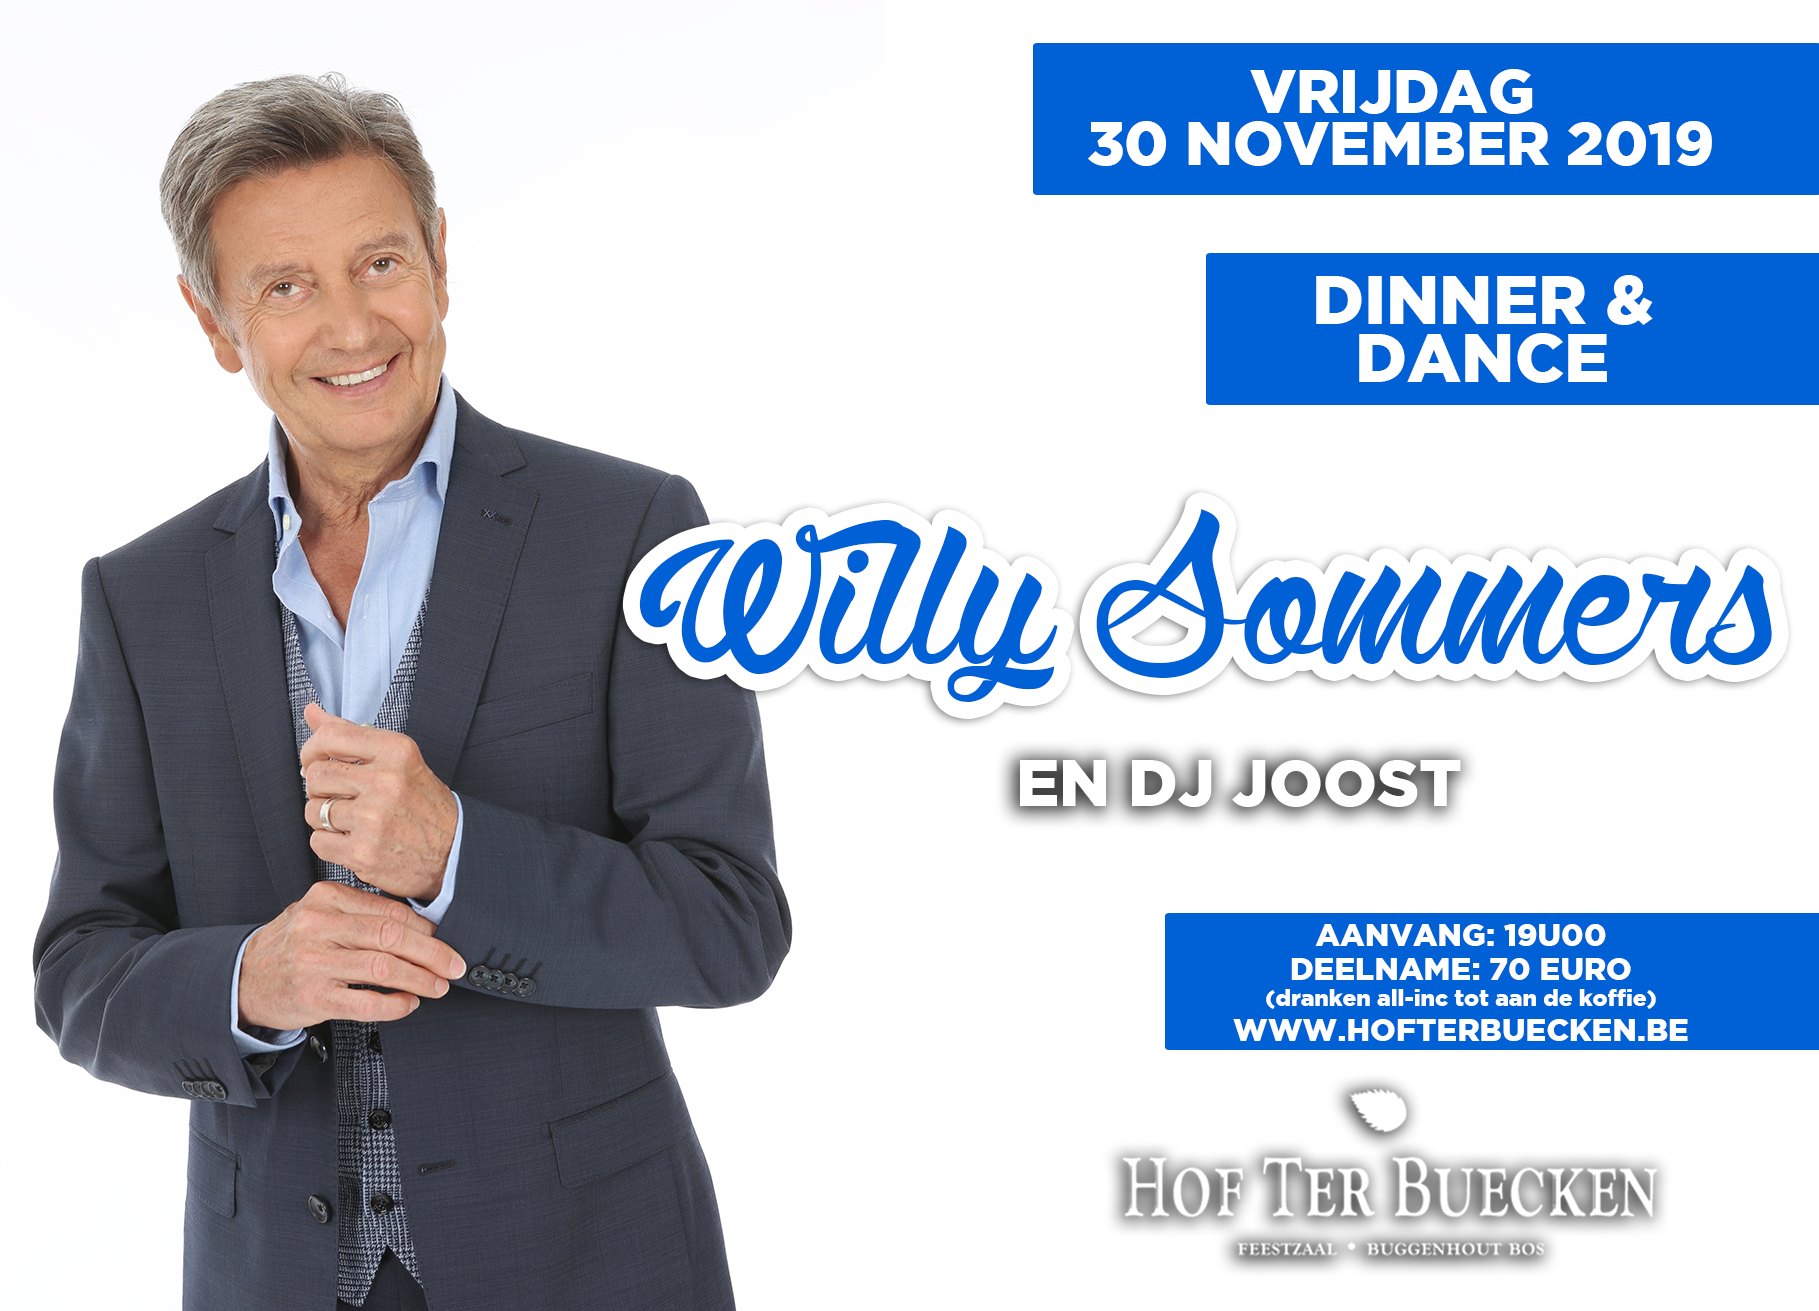 willysommers